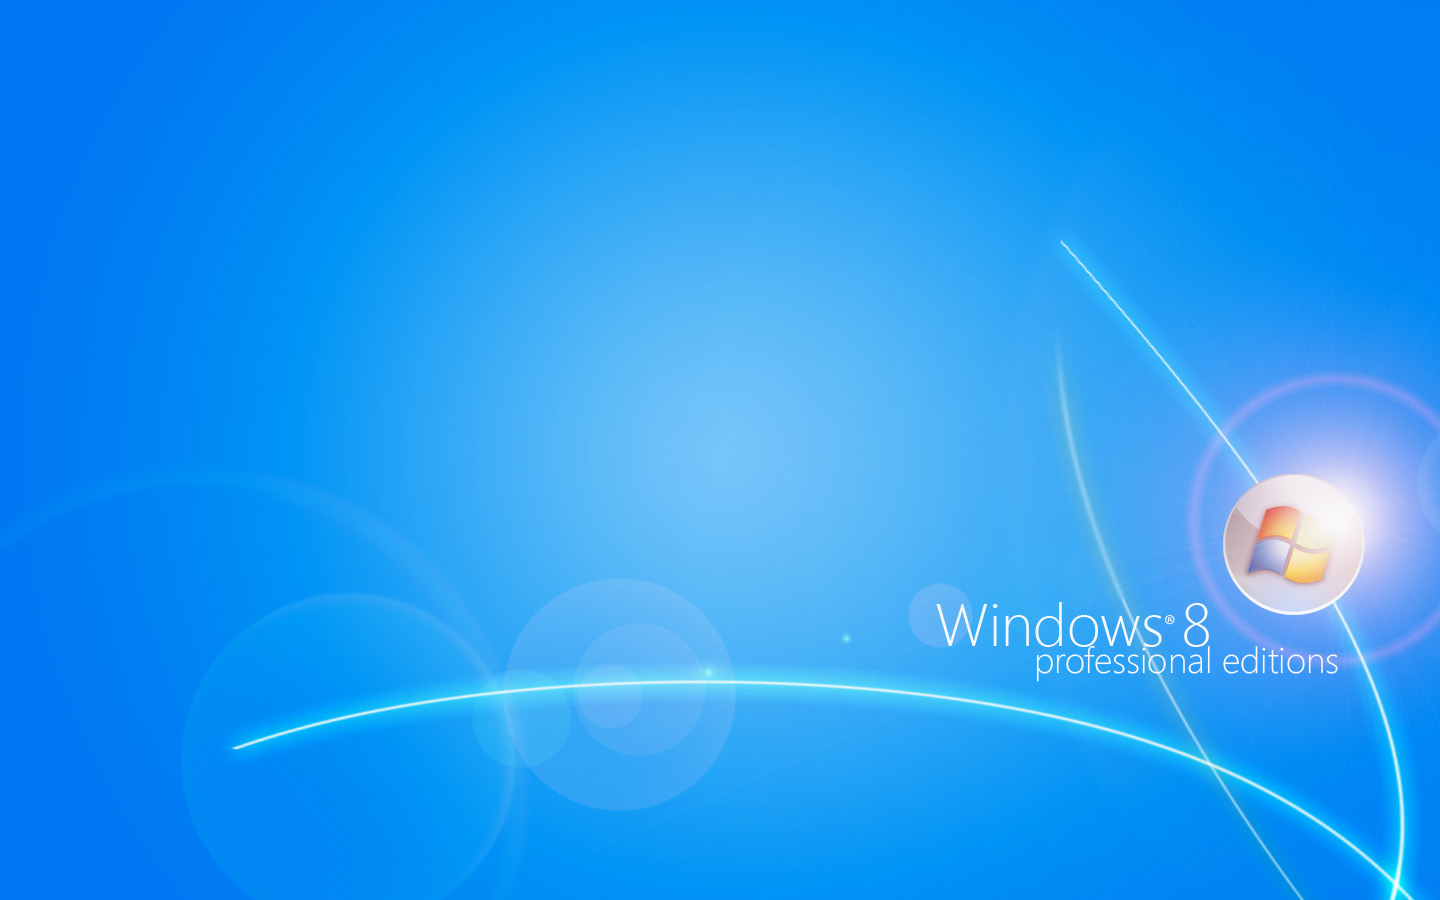 Sfondi Desktop Natalizi Windows 8.Sfondi Desktop Download Gratuito Per Windows 8 Grotalreamen Cf